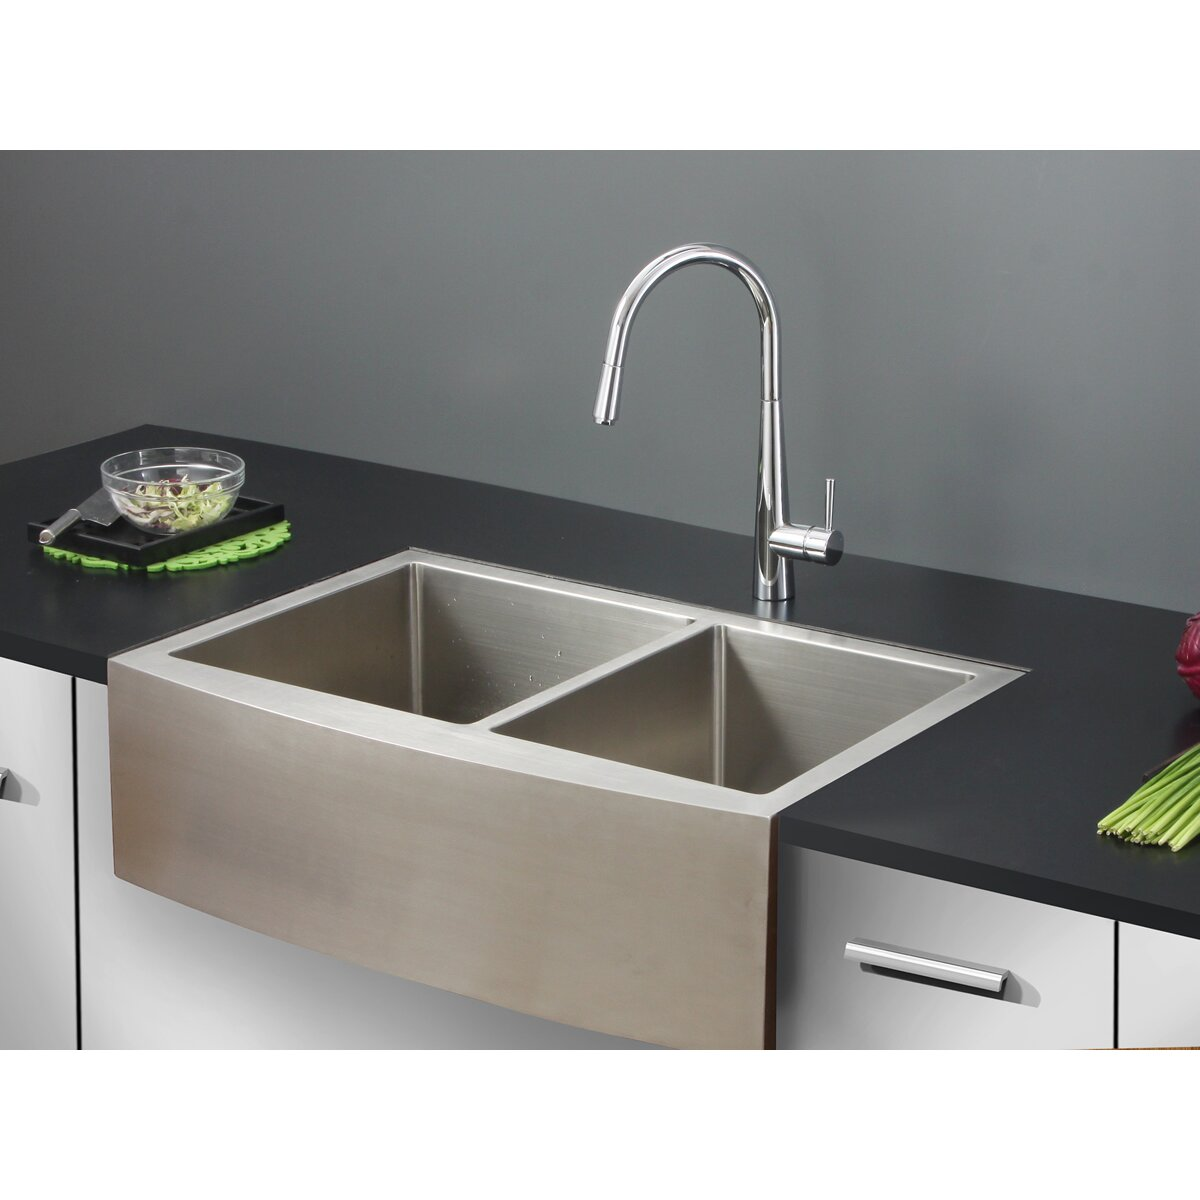 Double Bowl Apron Front Sink : ... 33